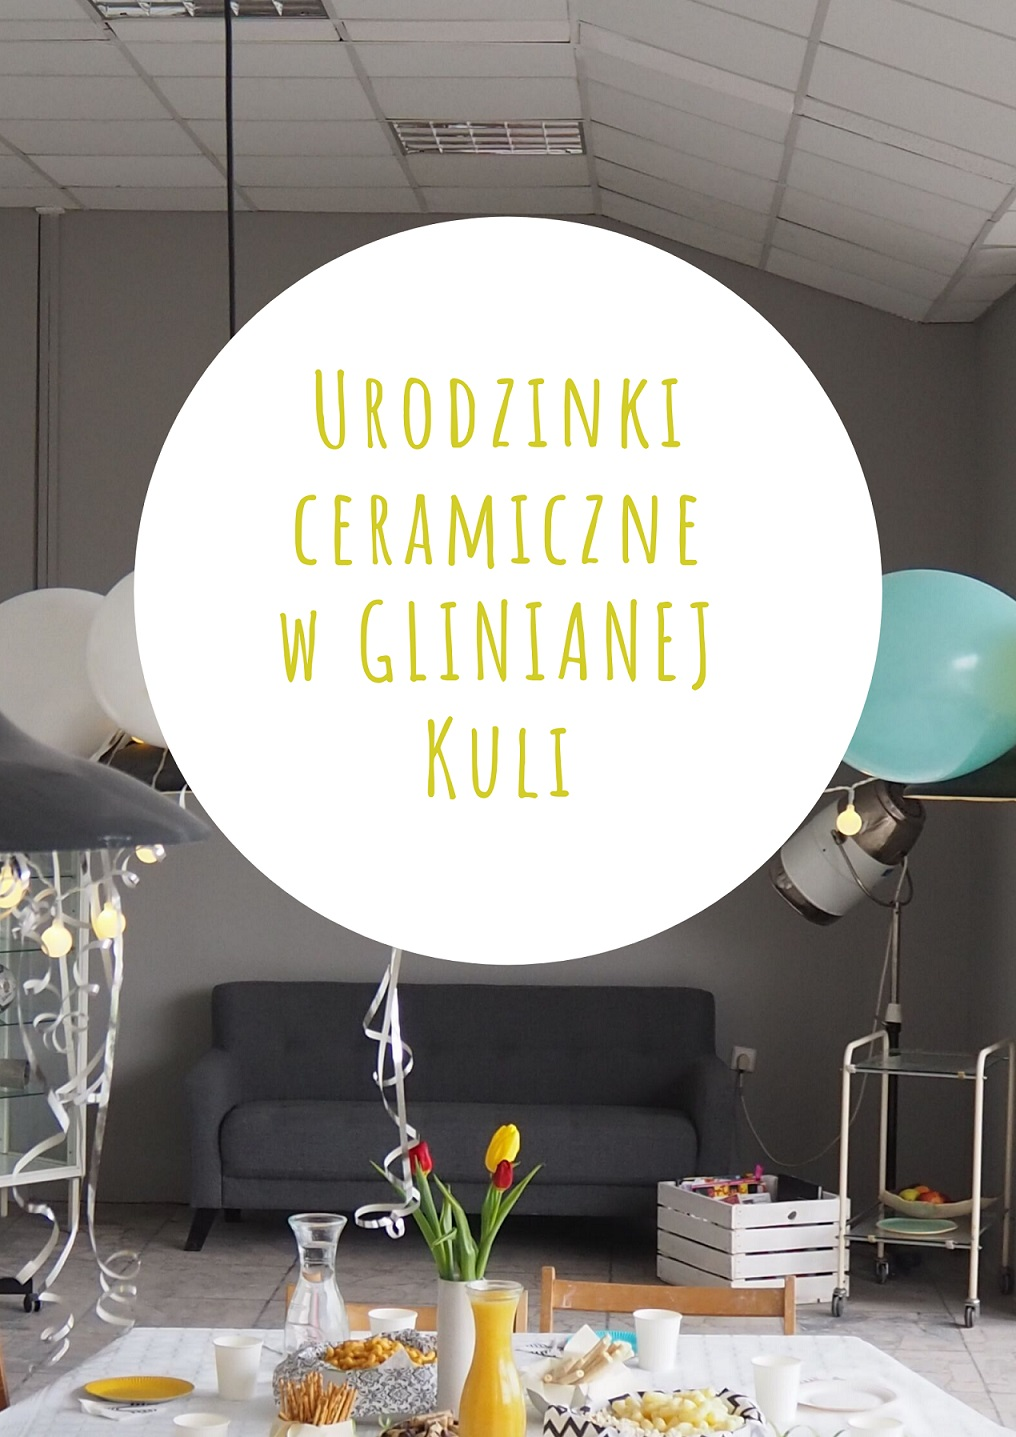 Urodzinki ceramiczne